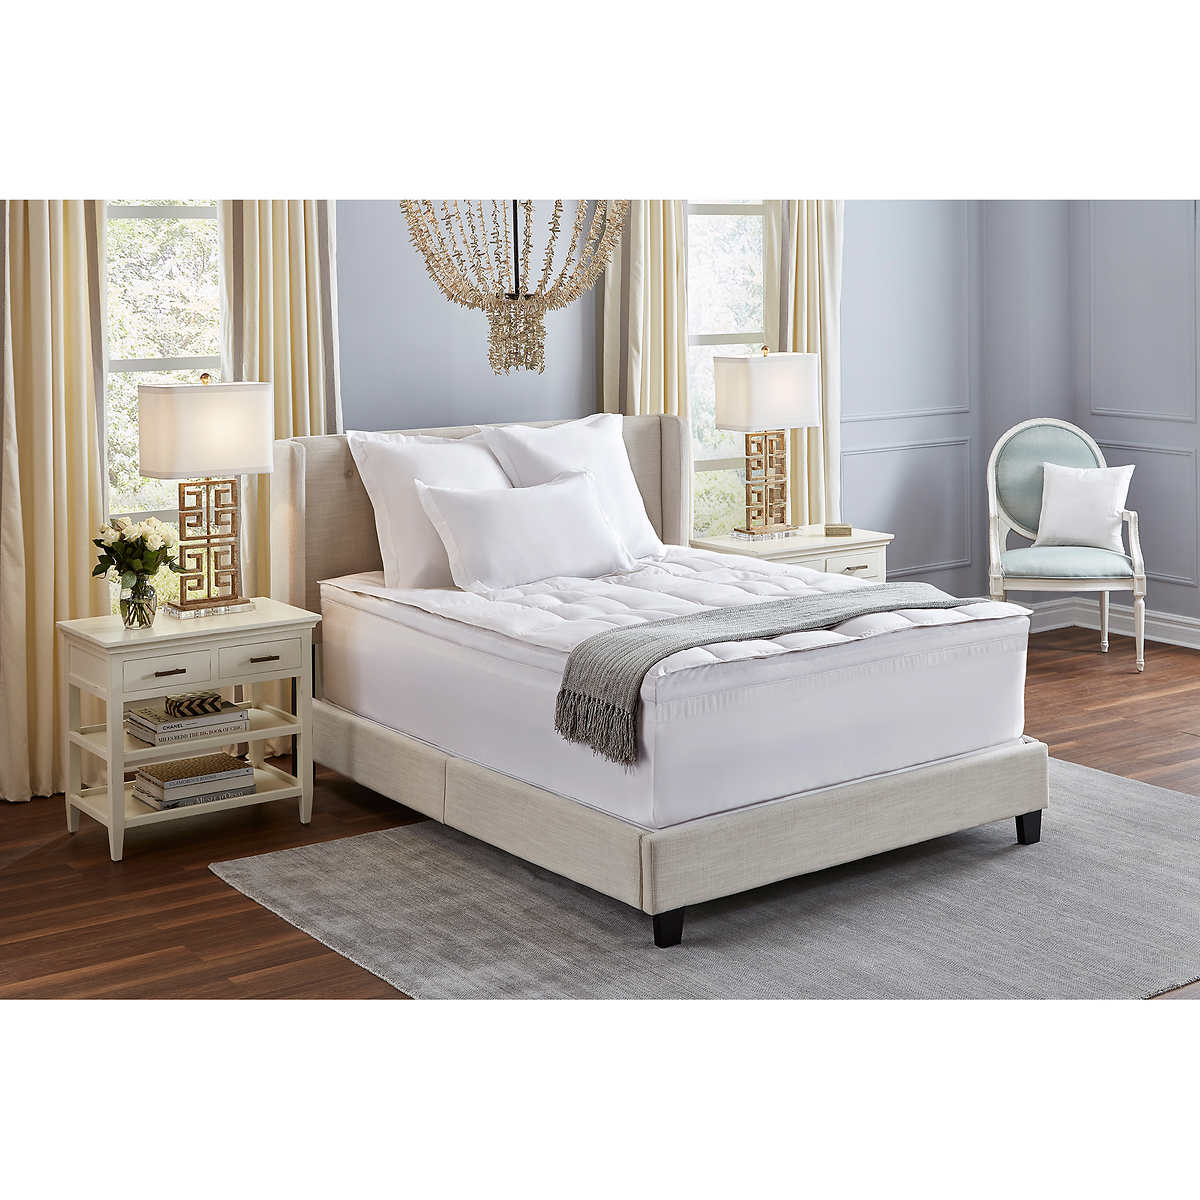 serenity by tempur pedic memory foam mattress topper